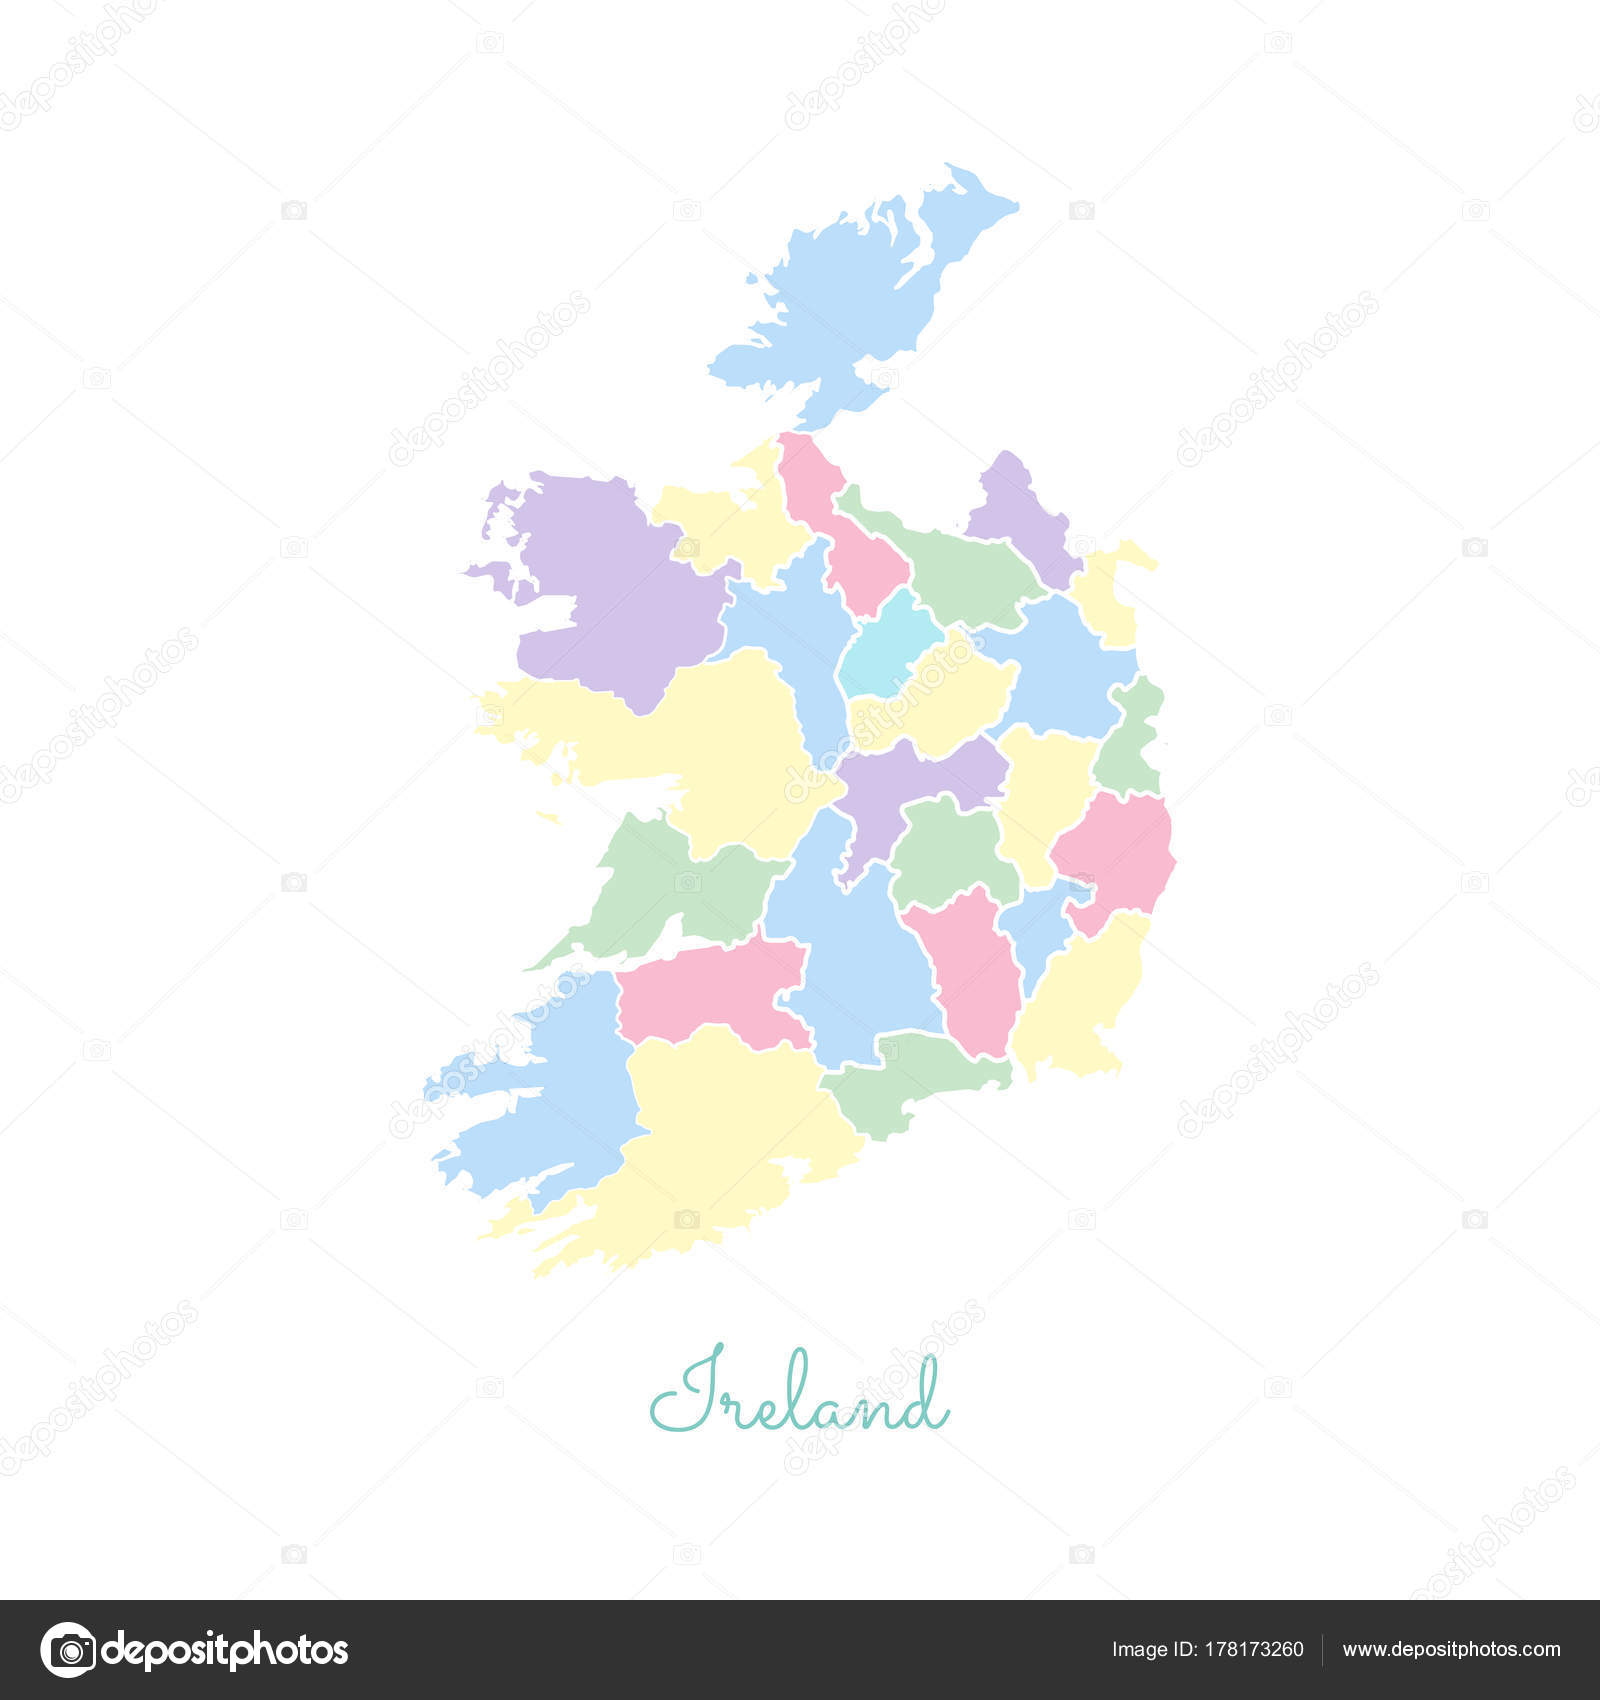 Detailed Map Of Ireland Vector.Ireland Region Map Colorful With White Outline Detailed Map Of